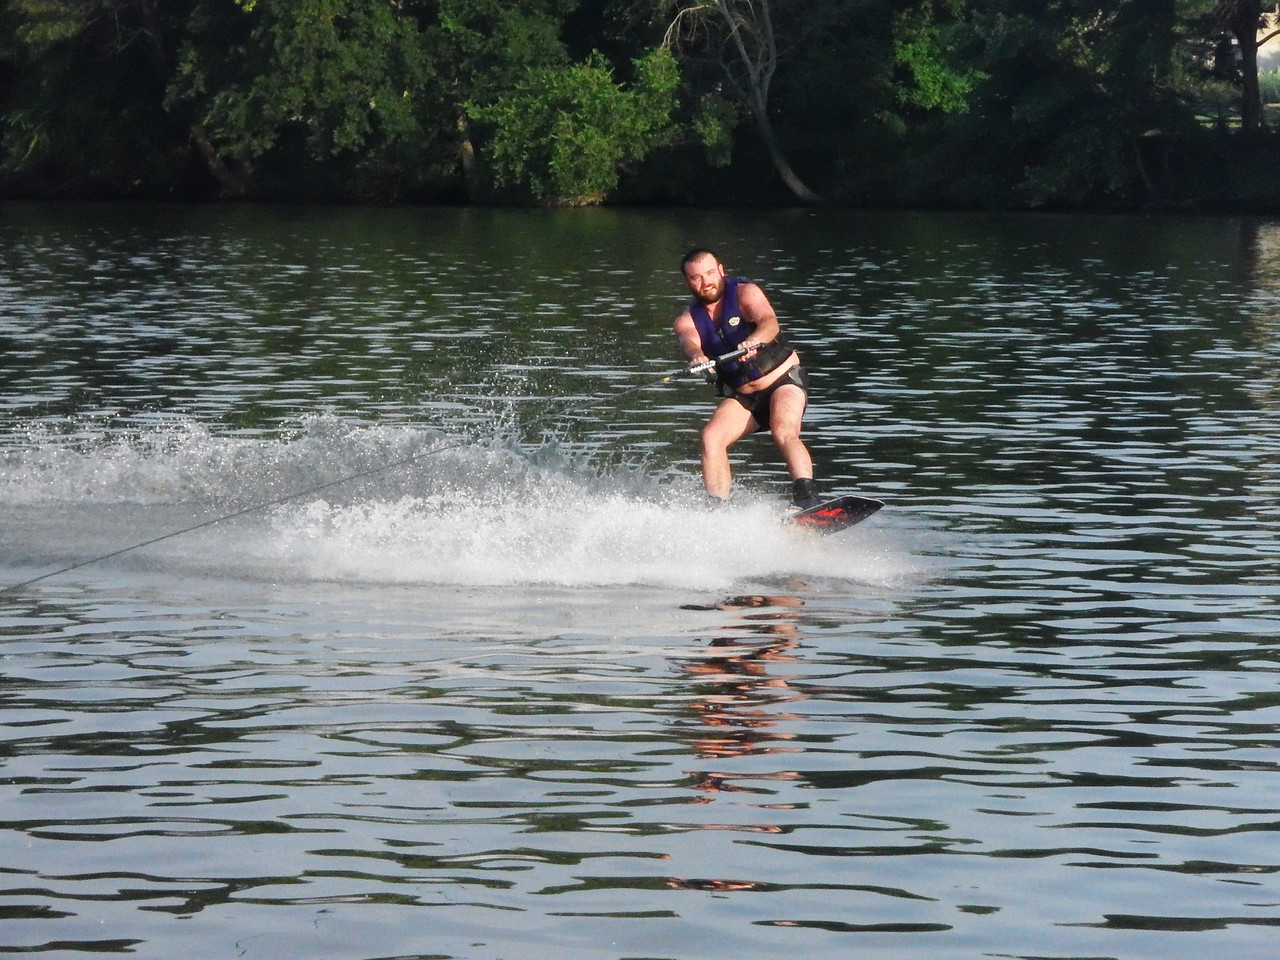 6/17 Eric on the wakeboard